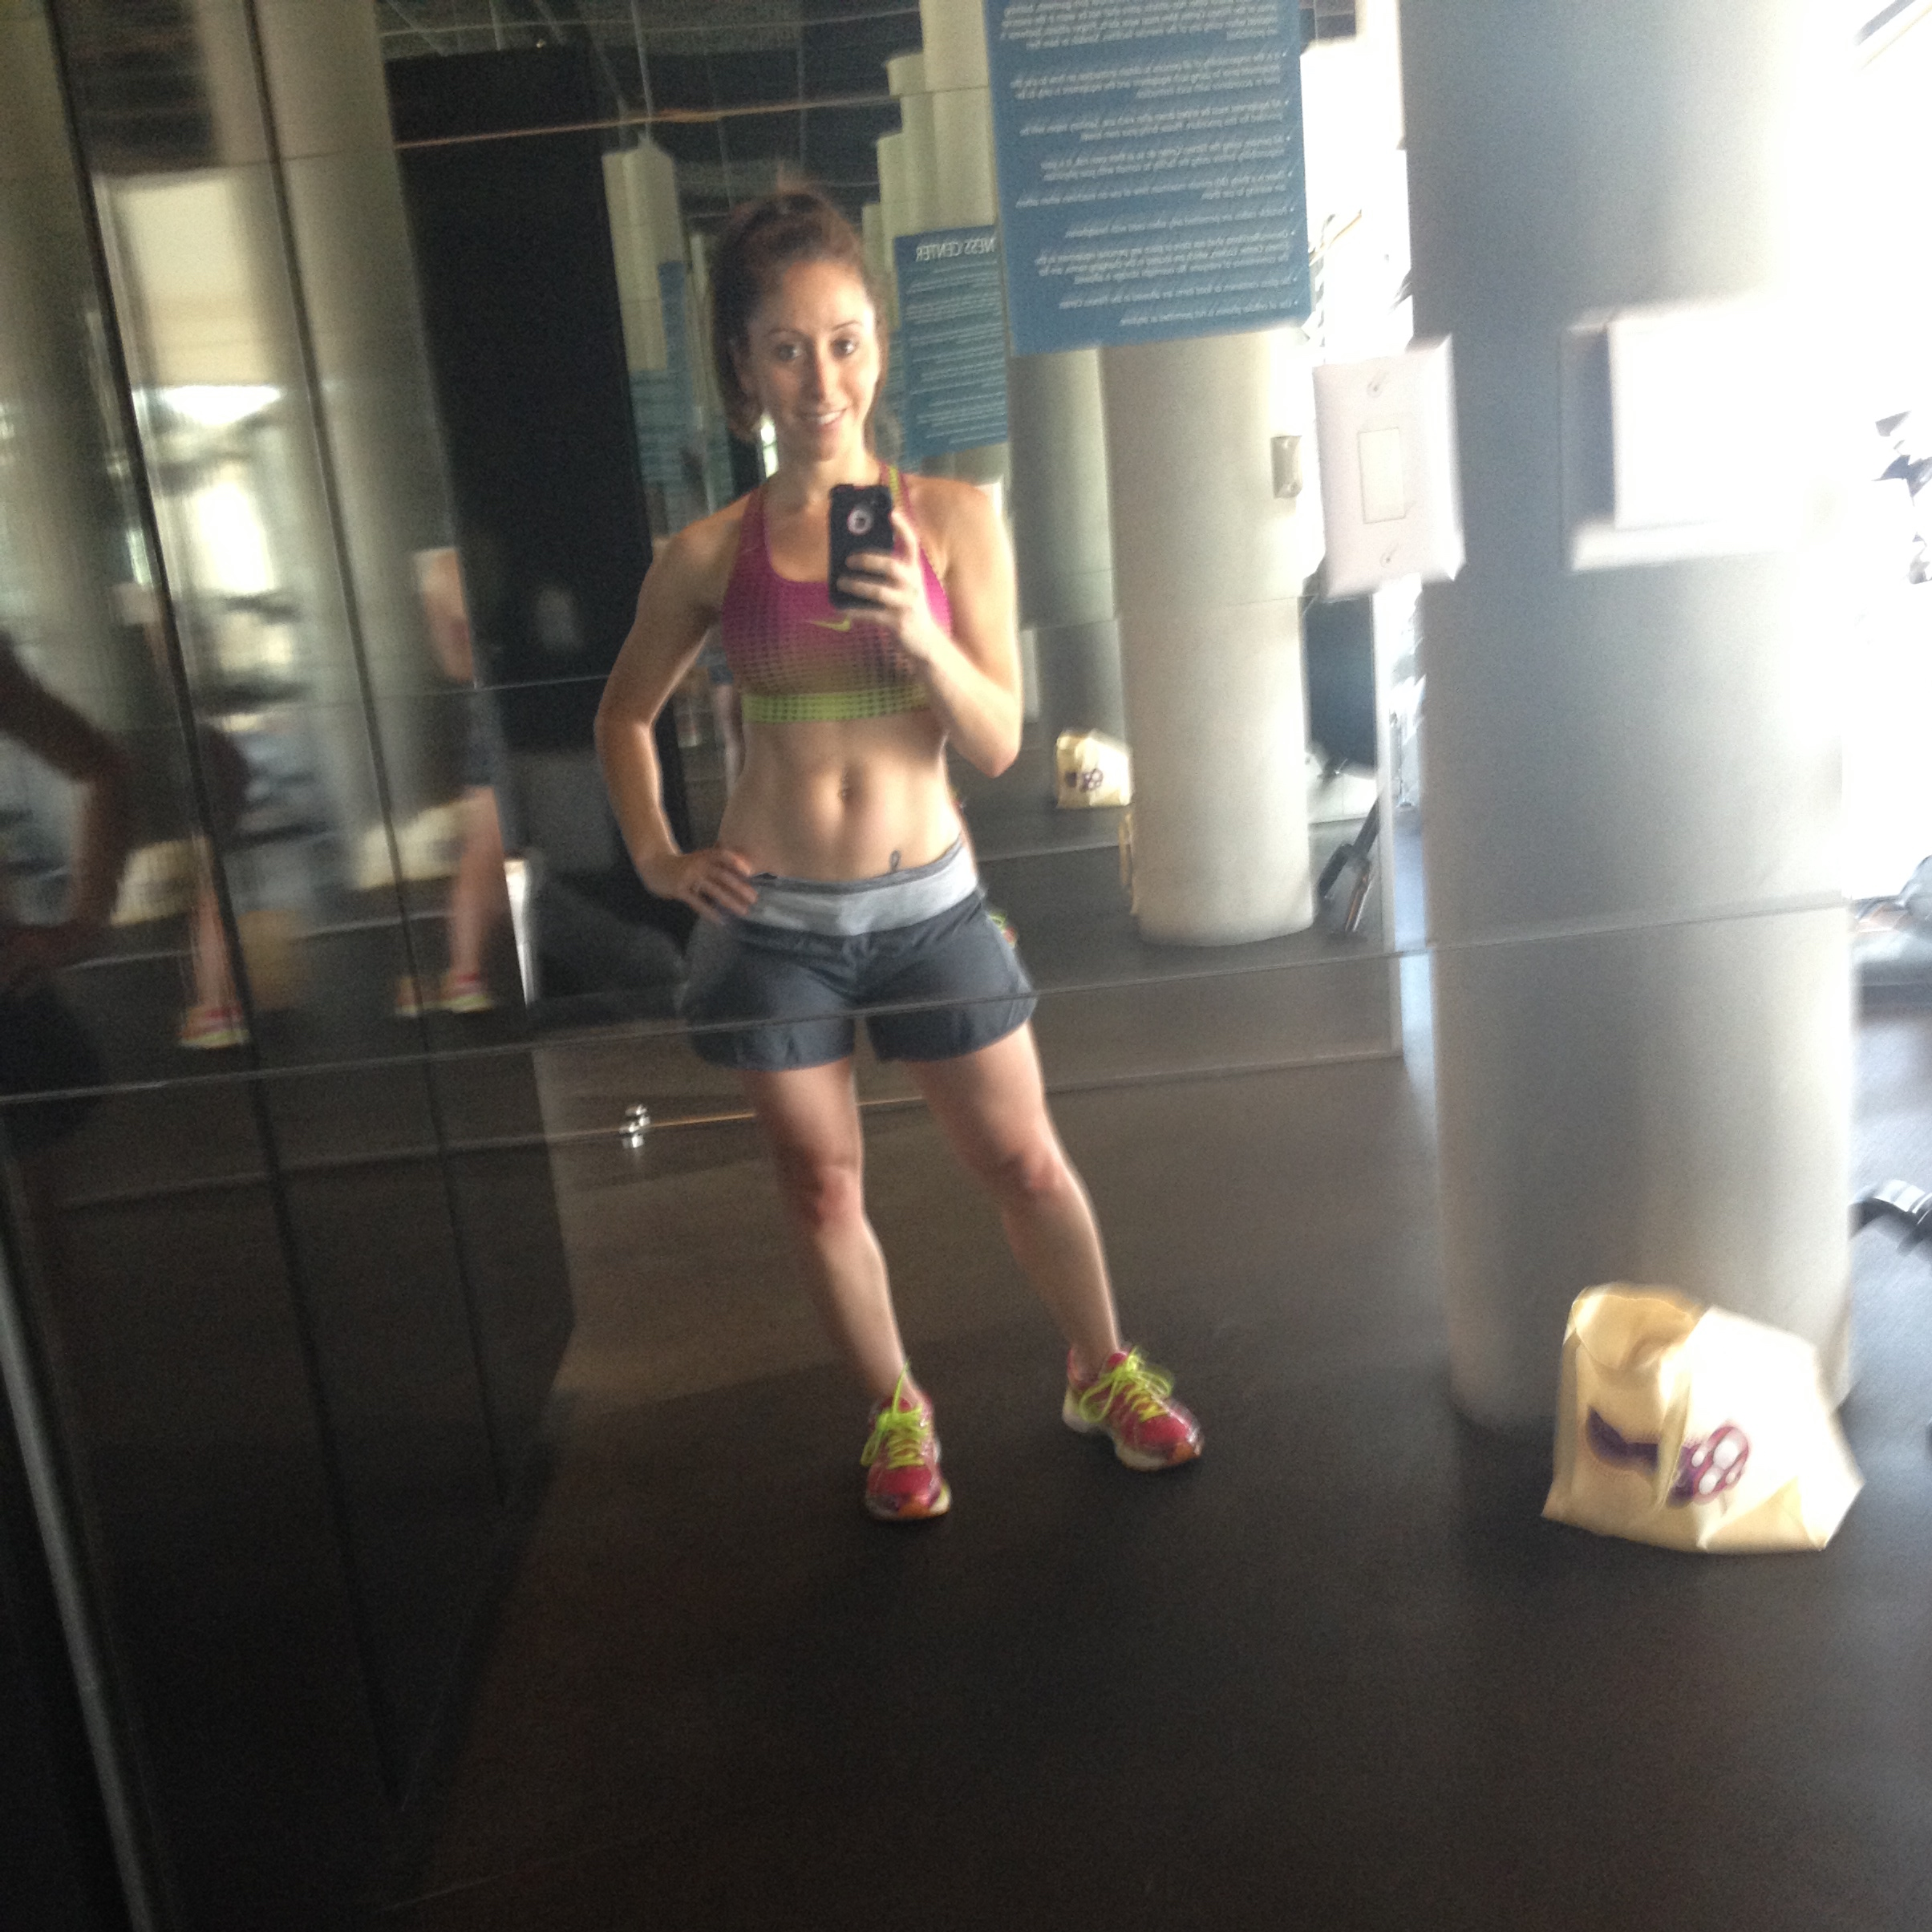 I made use of my hotel gym during my own bachelorette weekend in Vegas.